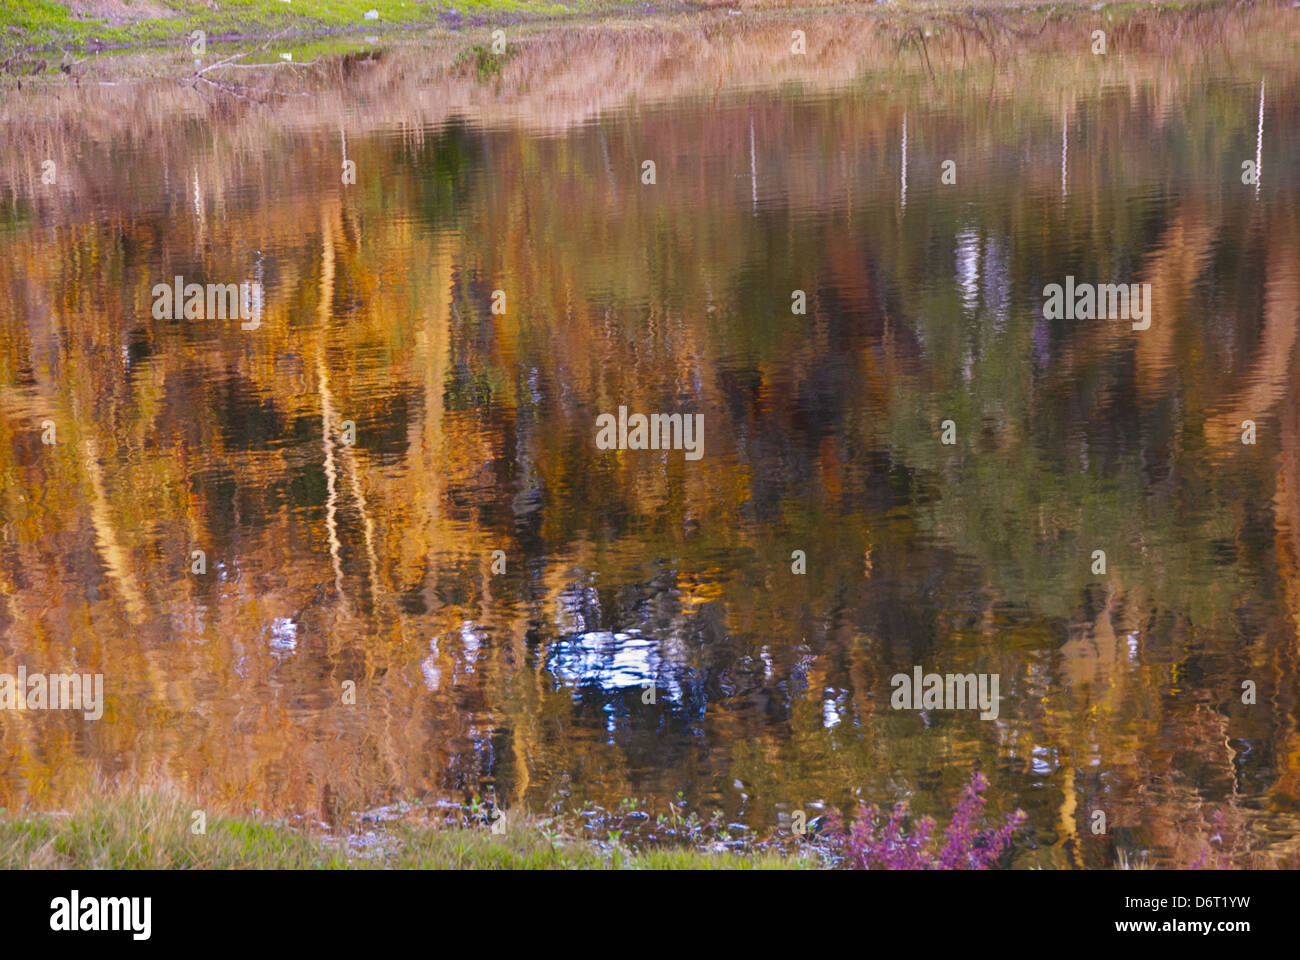 Water reflections in the Eagans Creek Greenway, 300 protected lands on Amelia Island in Florida, USA - Stock Image